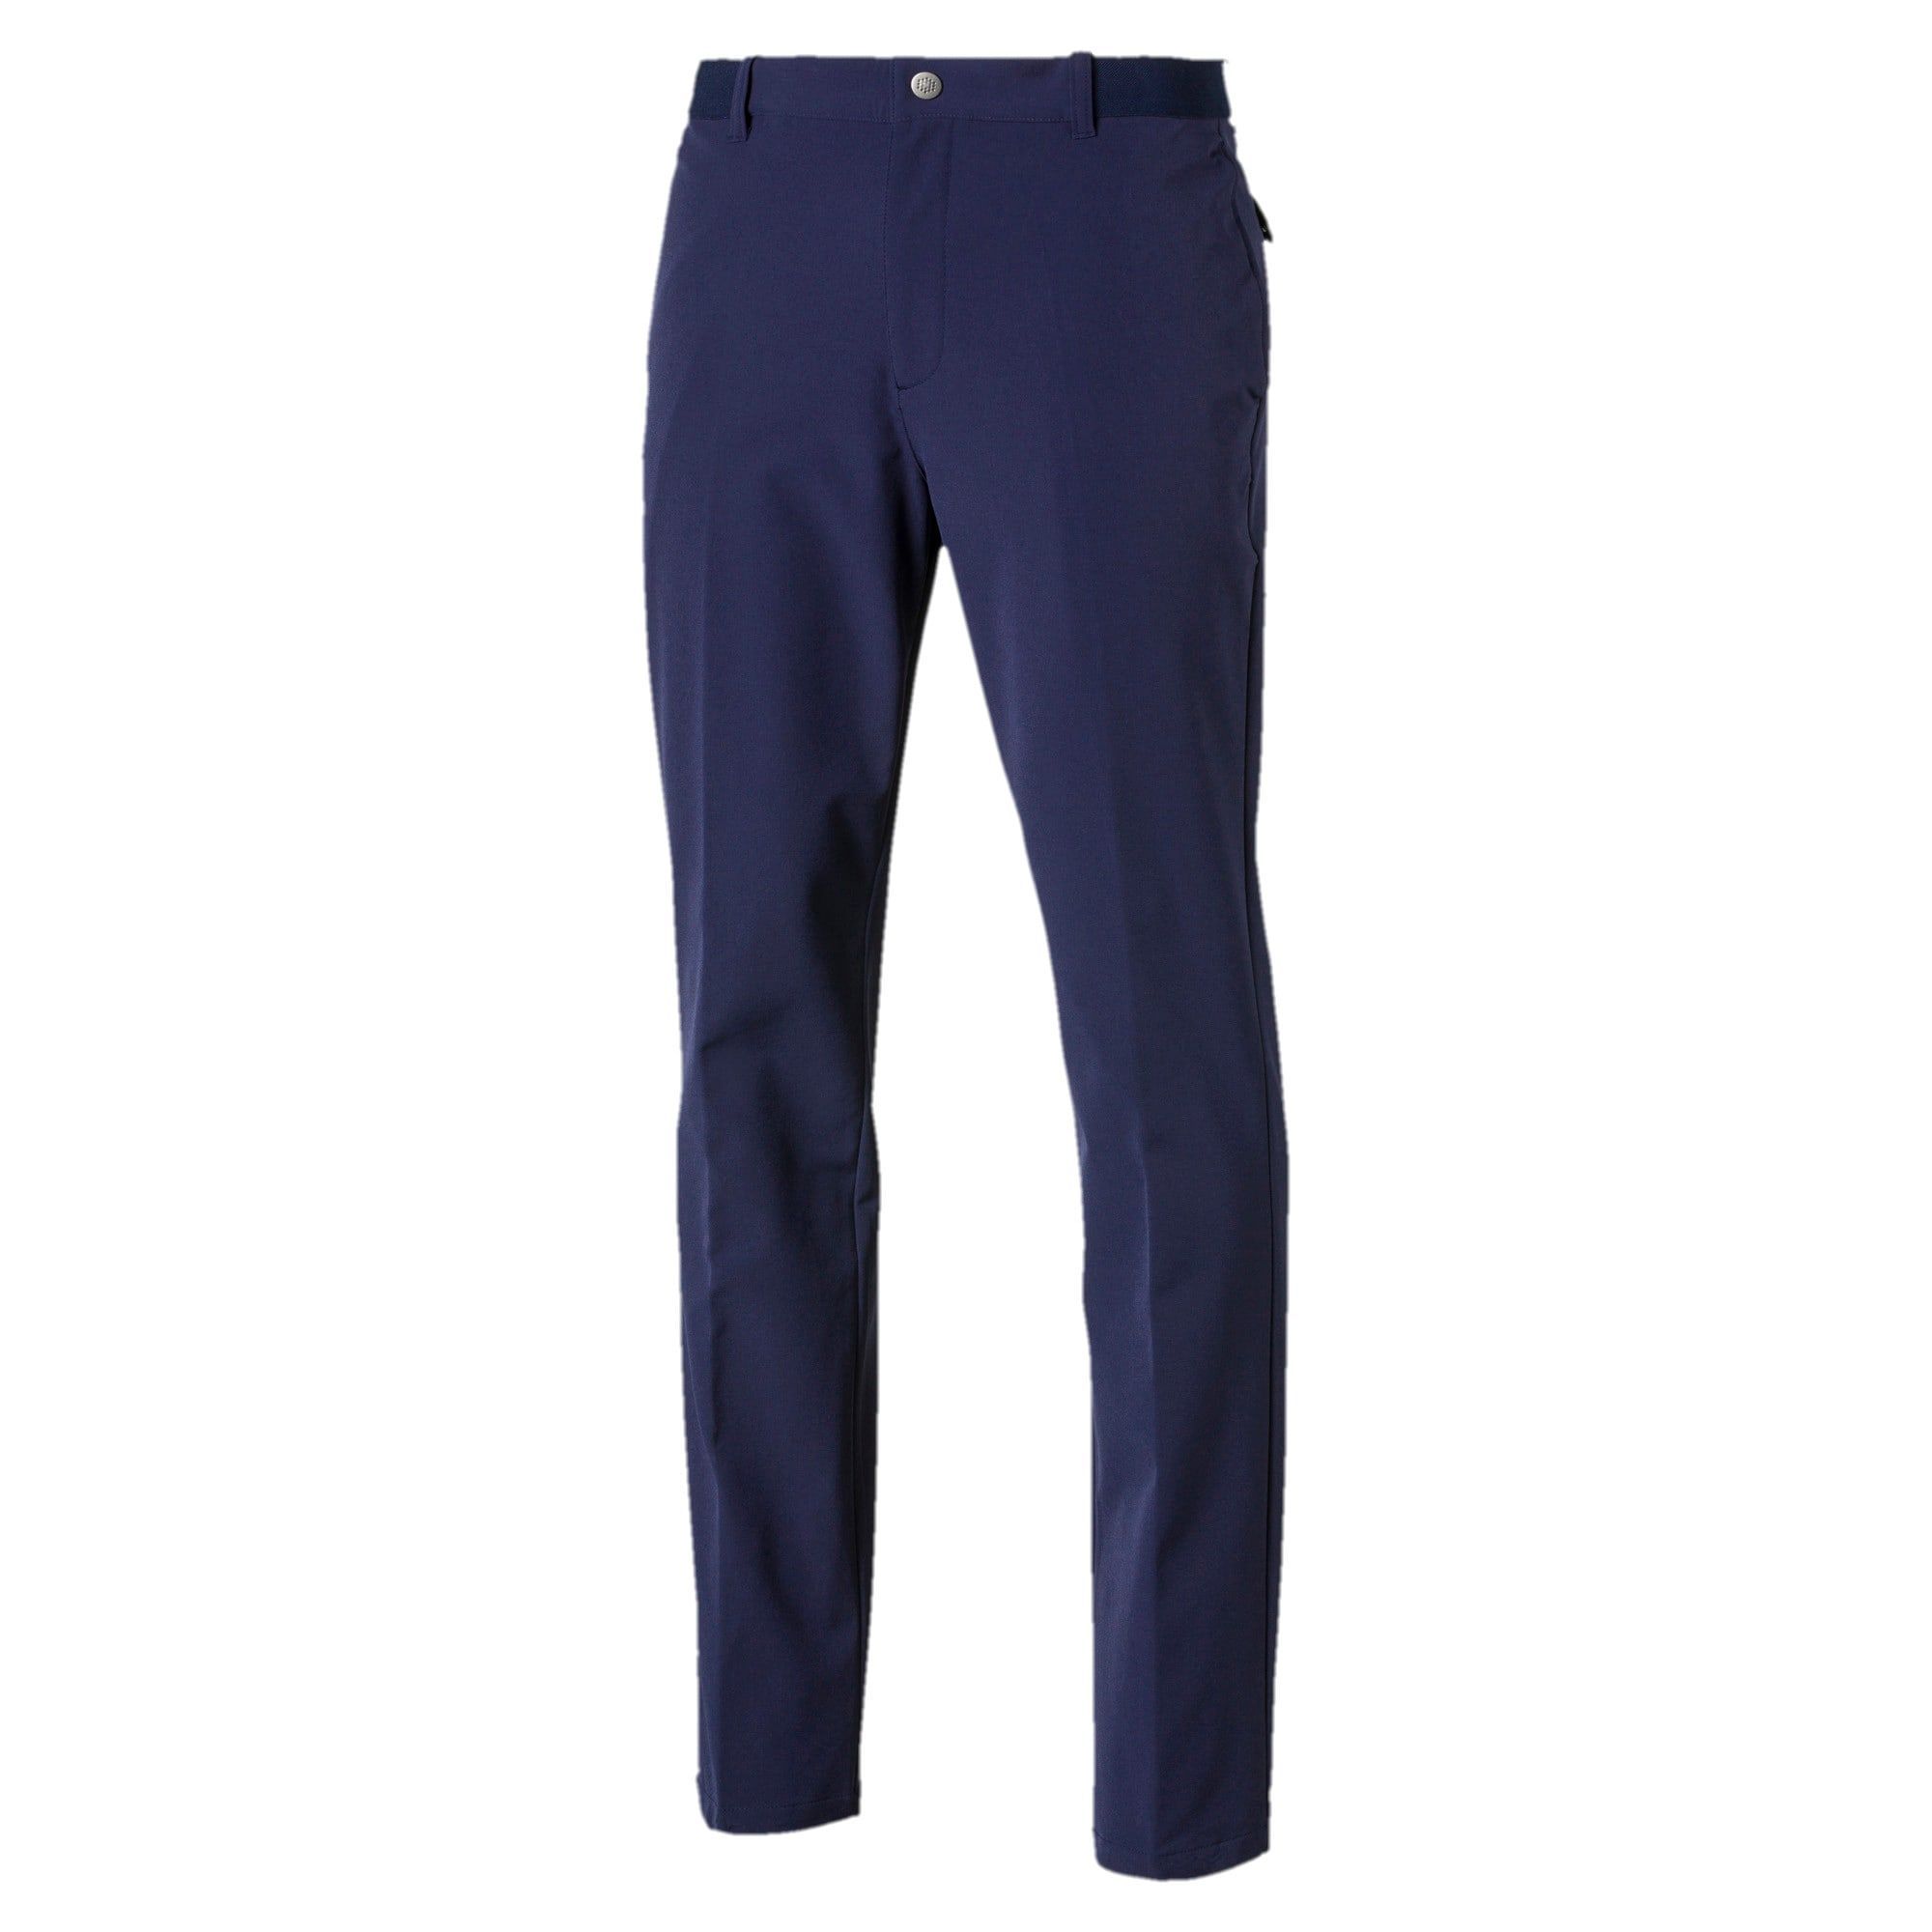 PUMA Stretch Utility 20 Mens Golf Pants in Peacoat size 4030